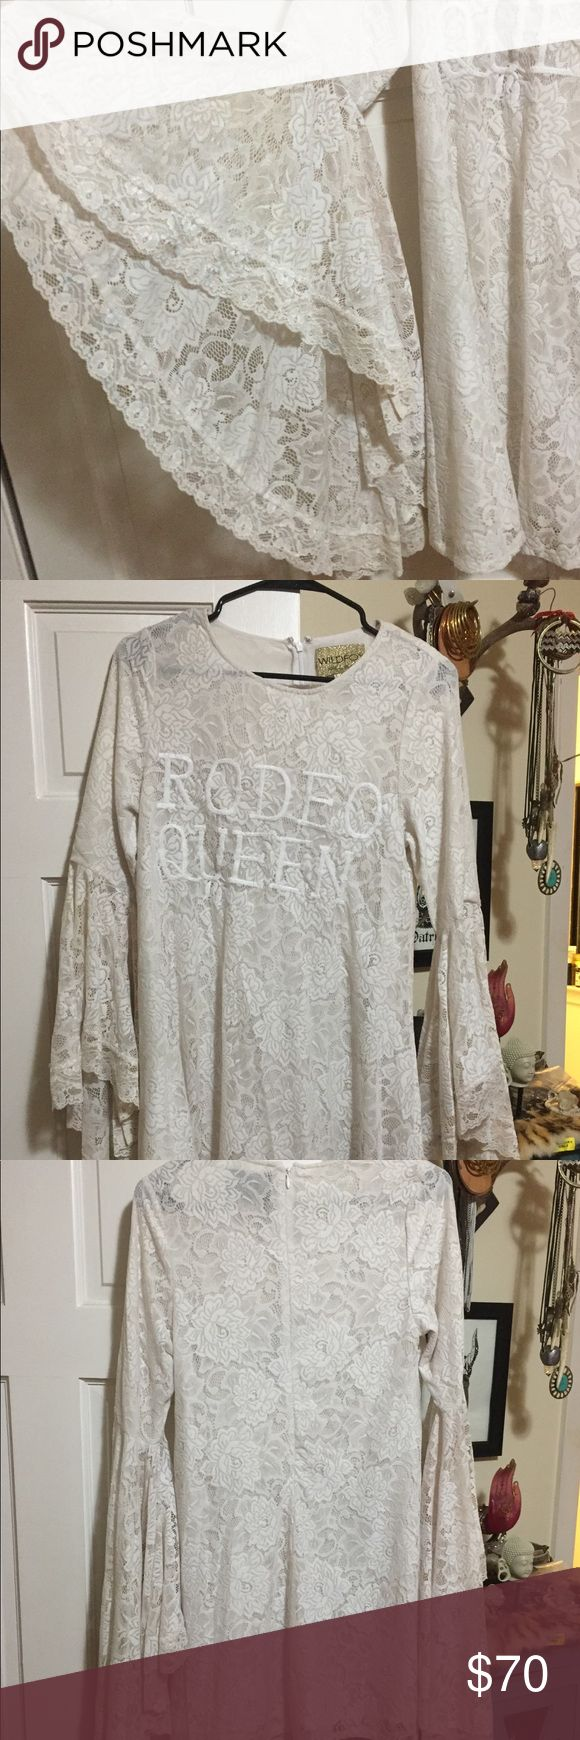 Wild fox white label rodeo queen dress Gorgeous! Worn once great condition! Wildfox Dresses Midi